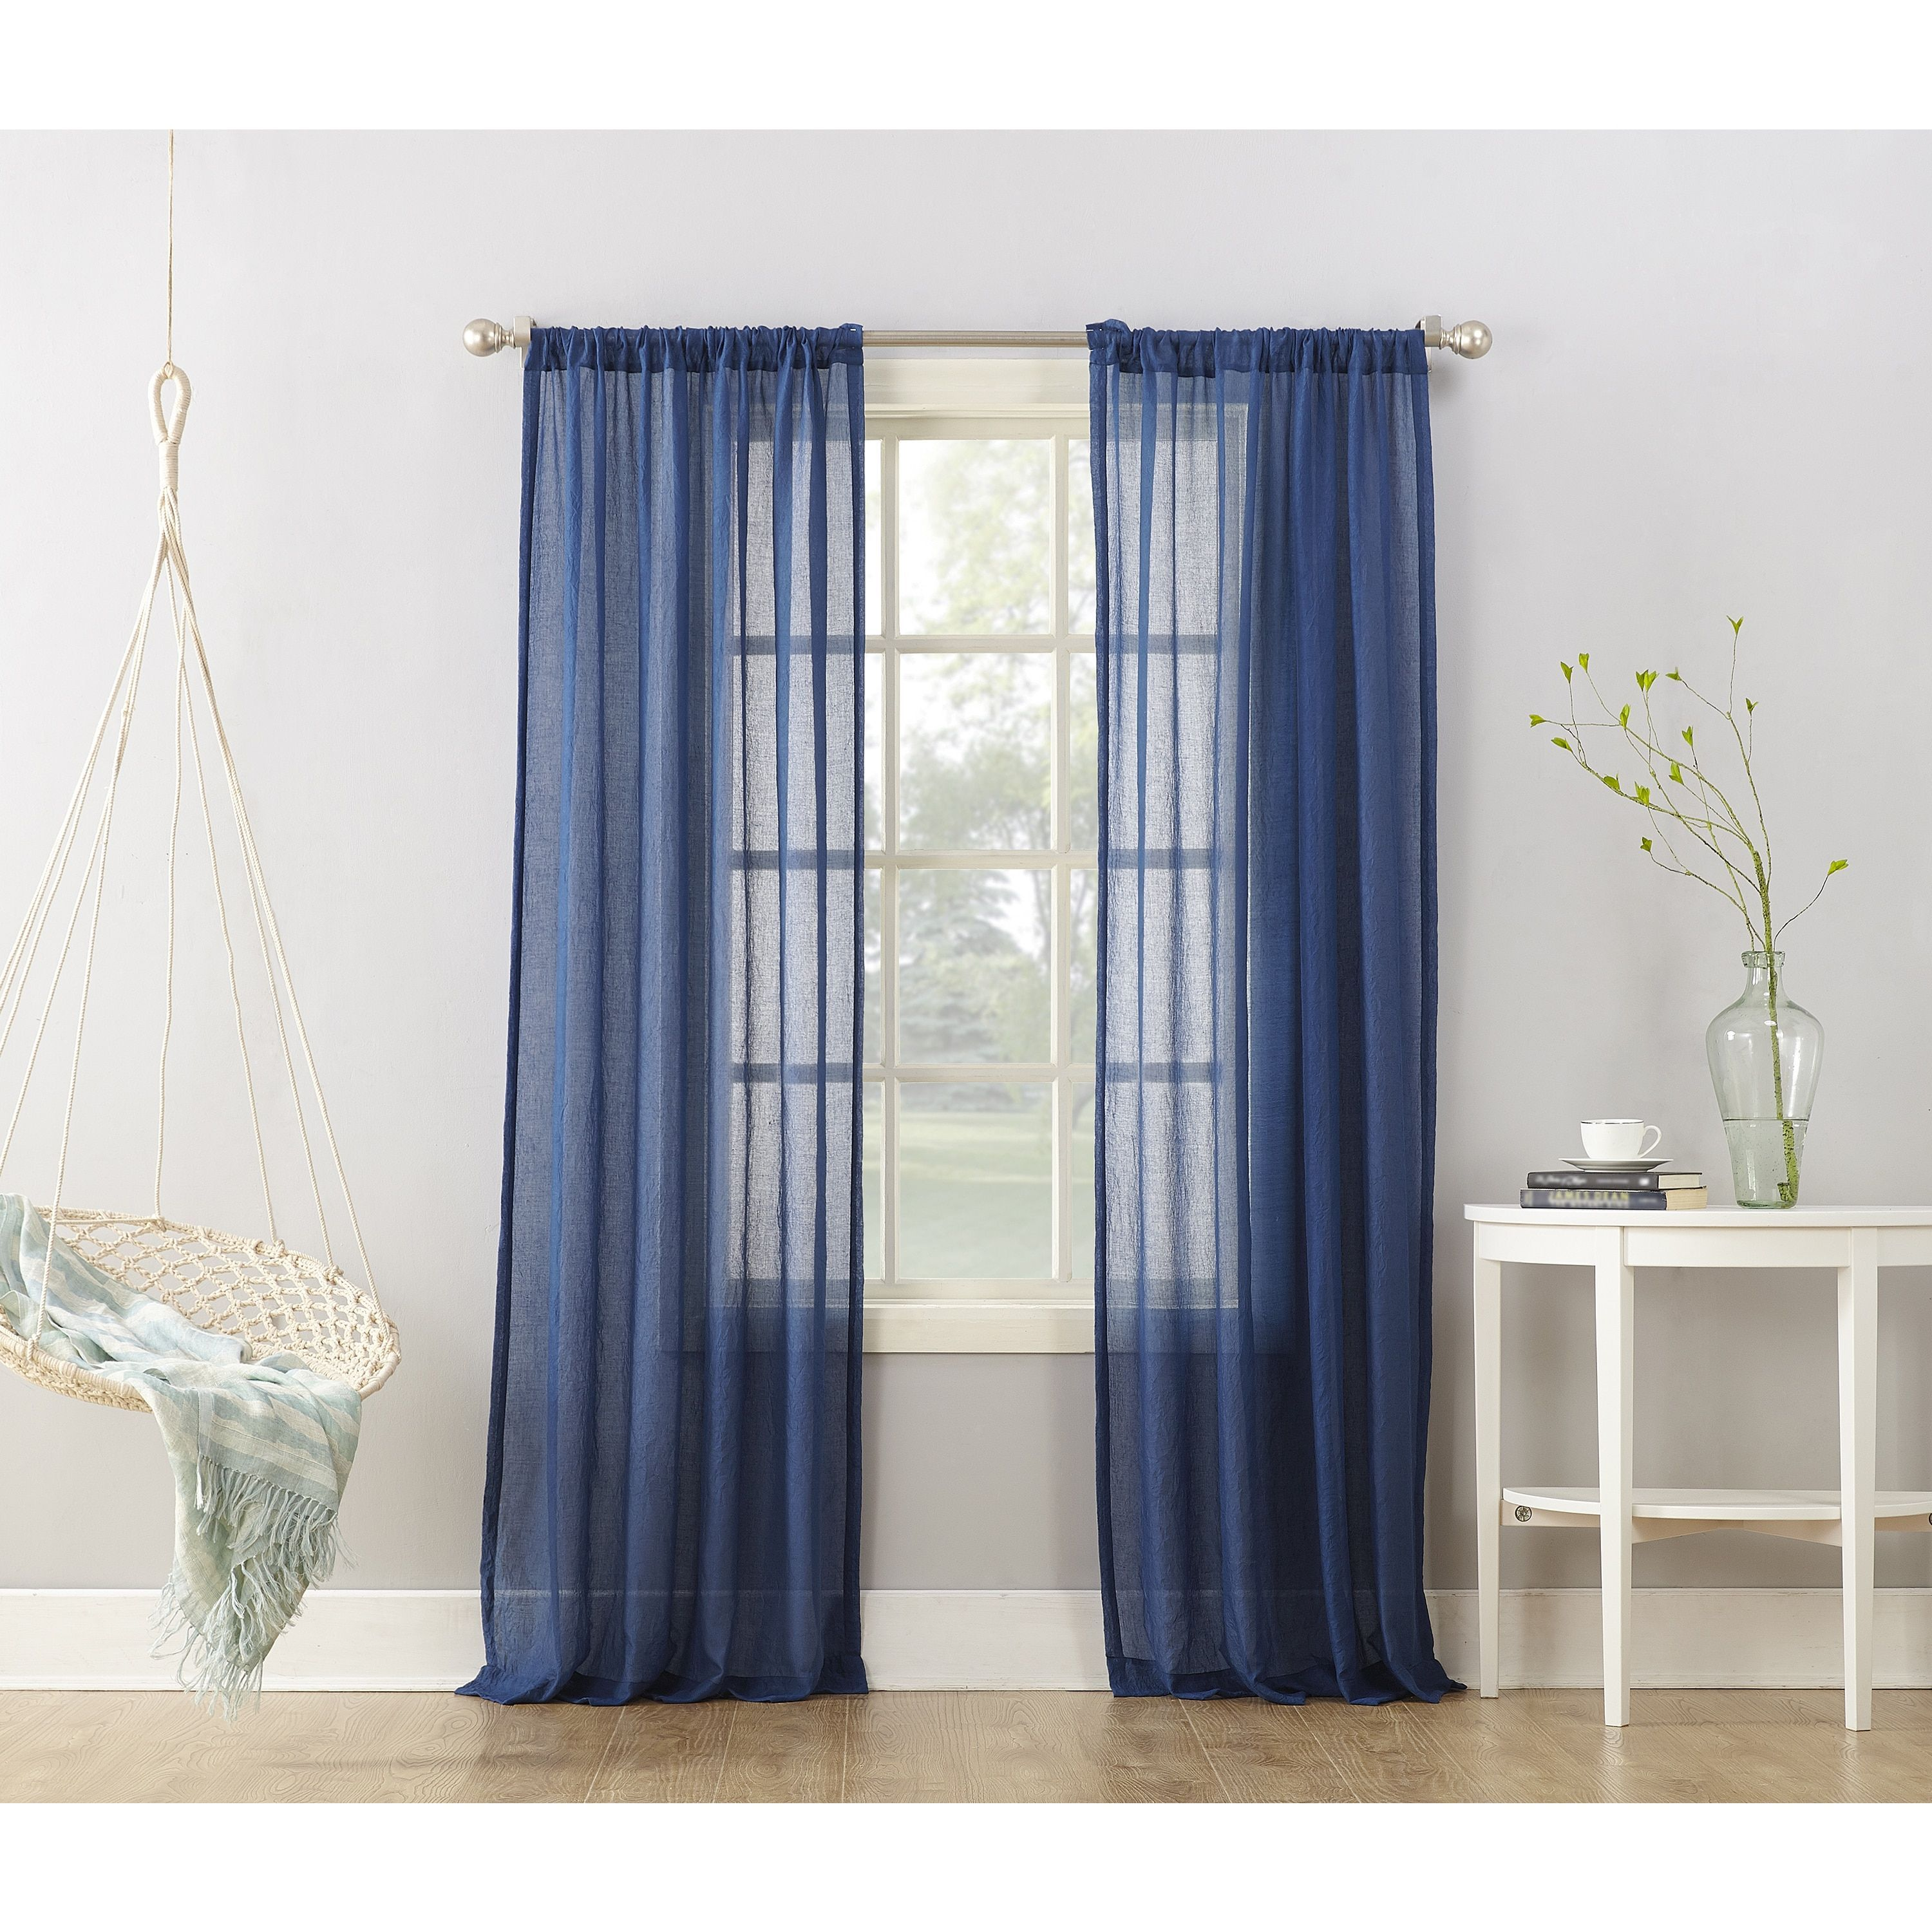 Window treatment ideas for 3 windows in a row  no  ladonna blue semisheer rod pocket curtain panel  inches